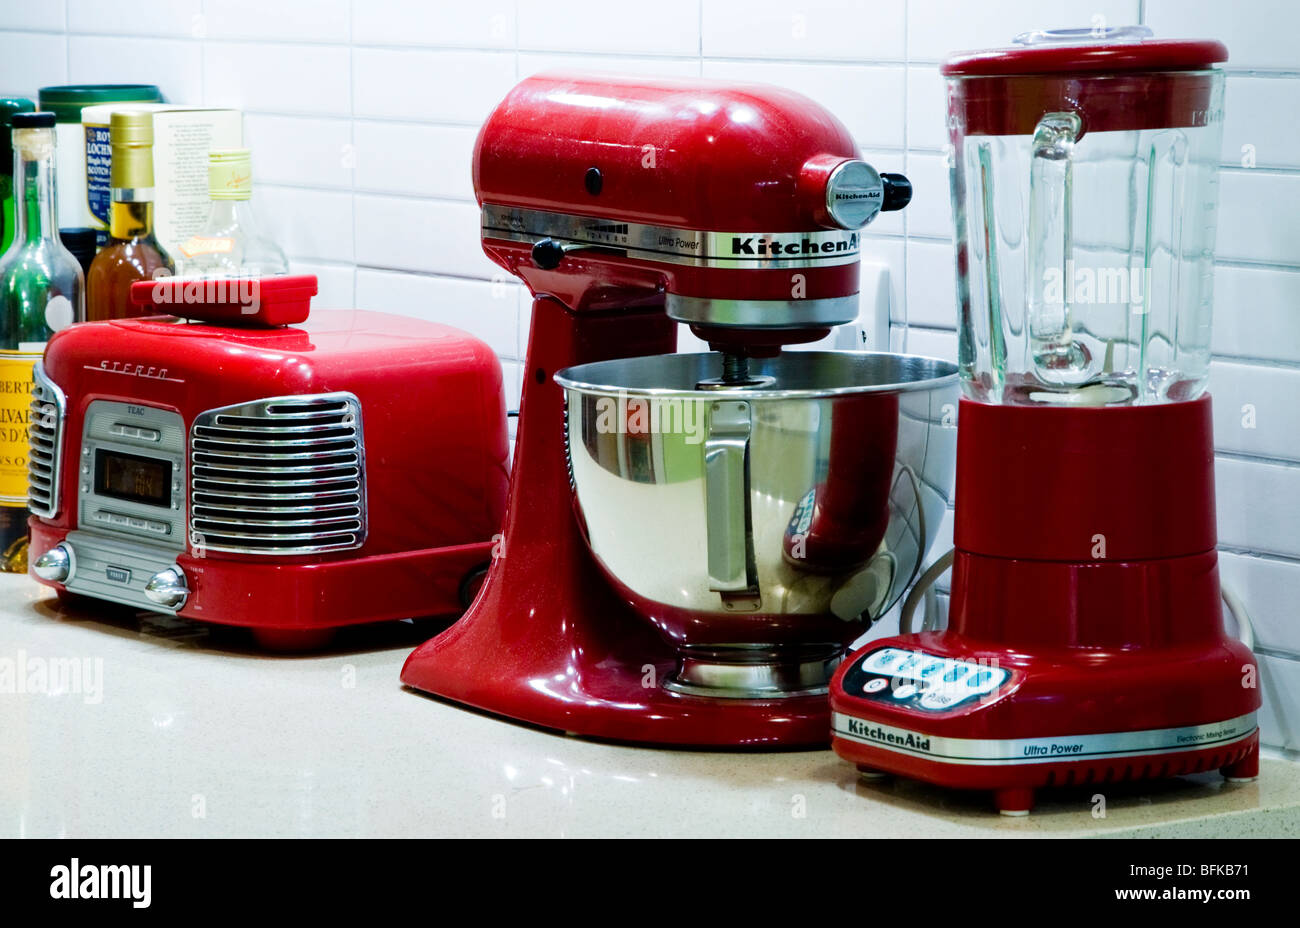 Red retro kitchen appliances on a worktop by KitchenAid Stock Photo ...